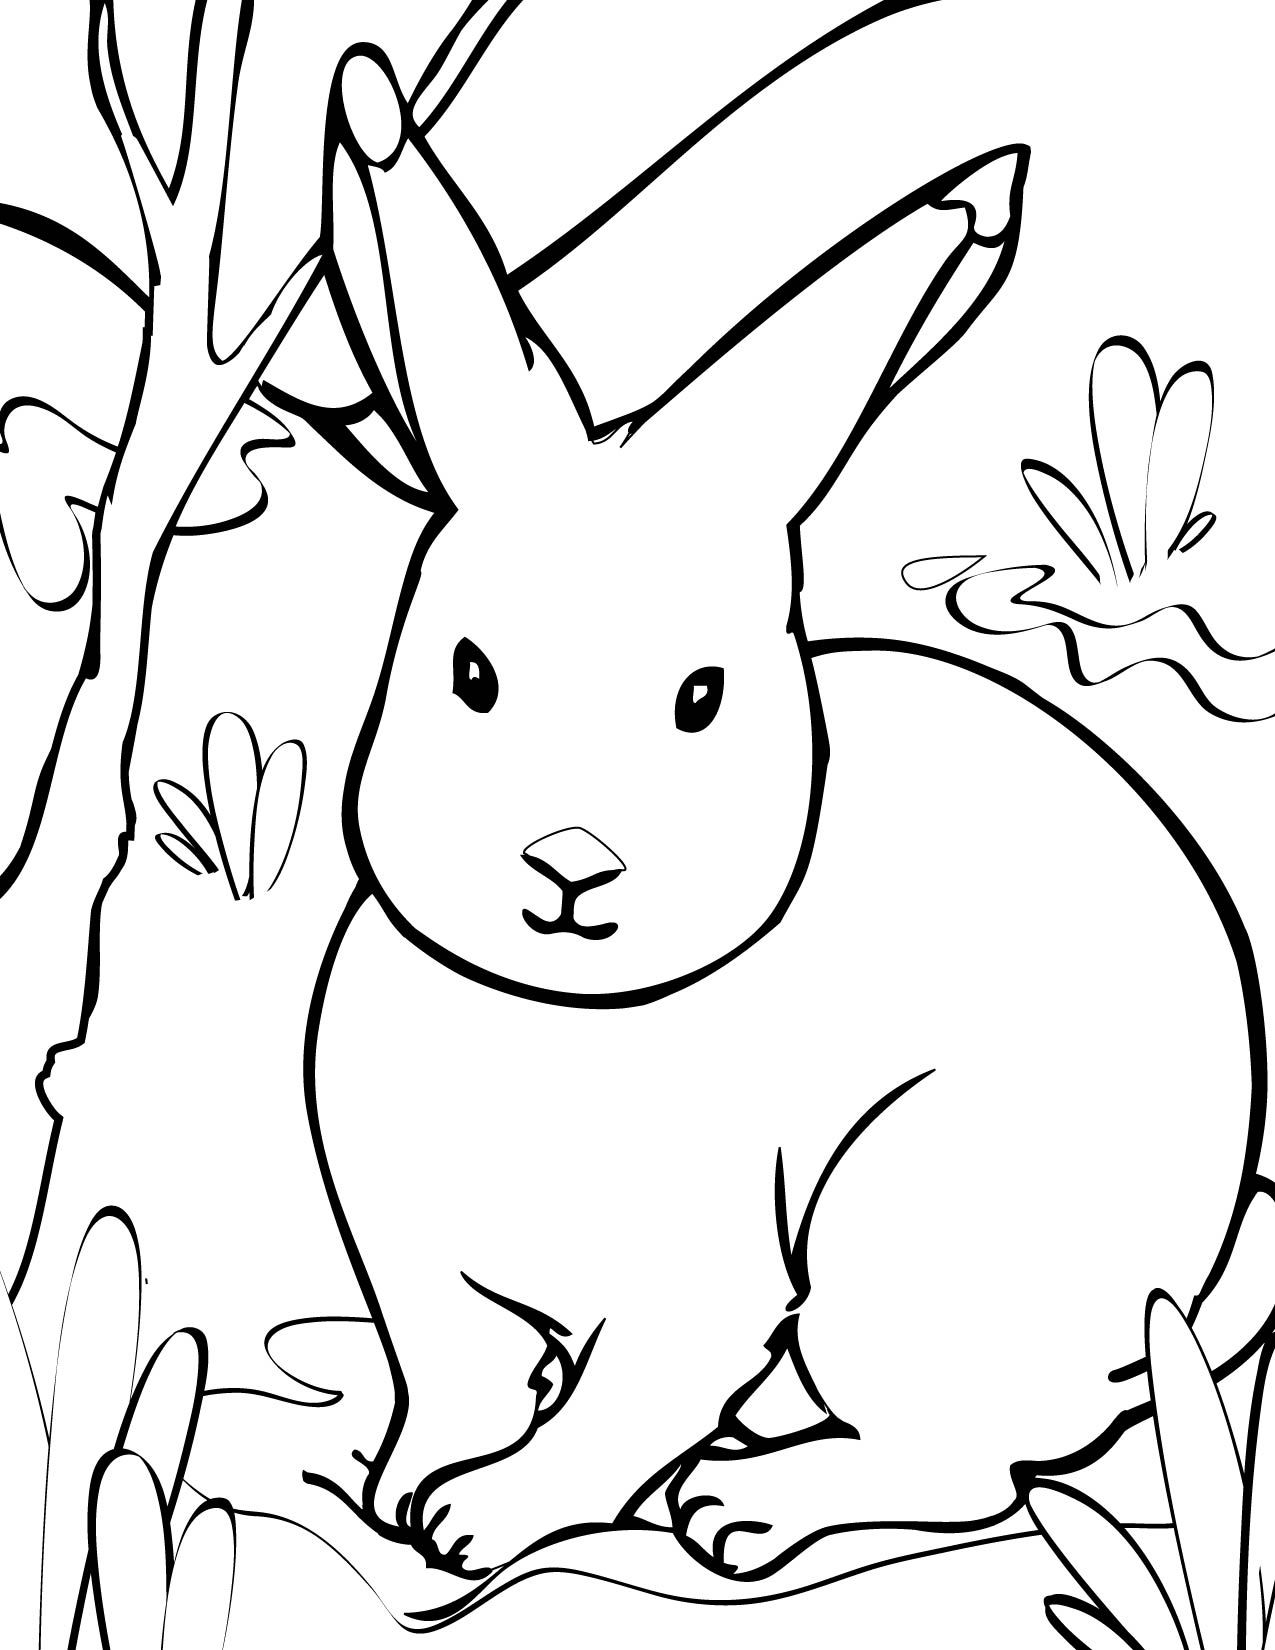 animal coloring pages print this page arctic animals coloring pages coloring pages